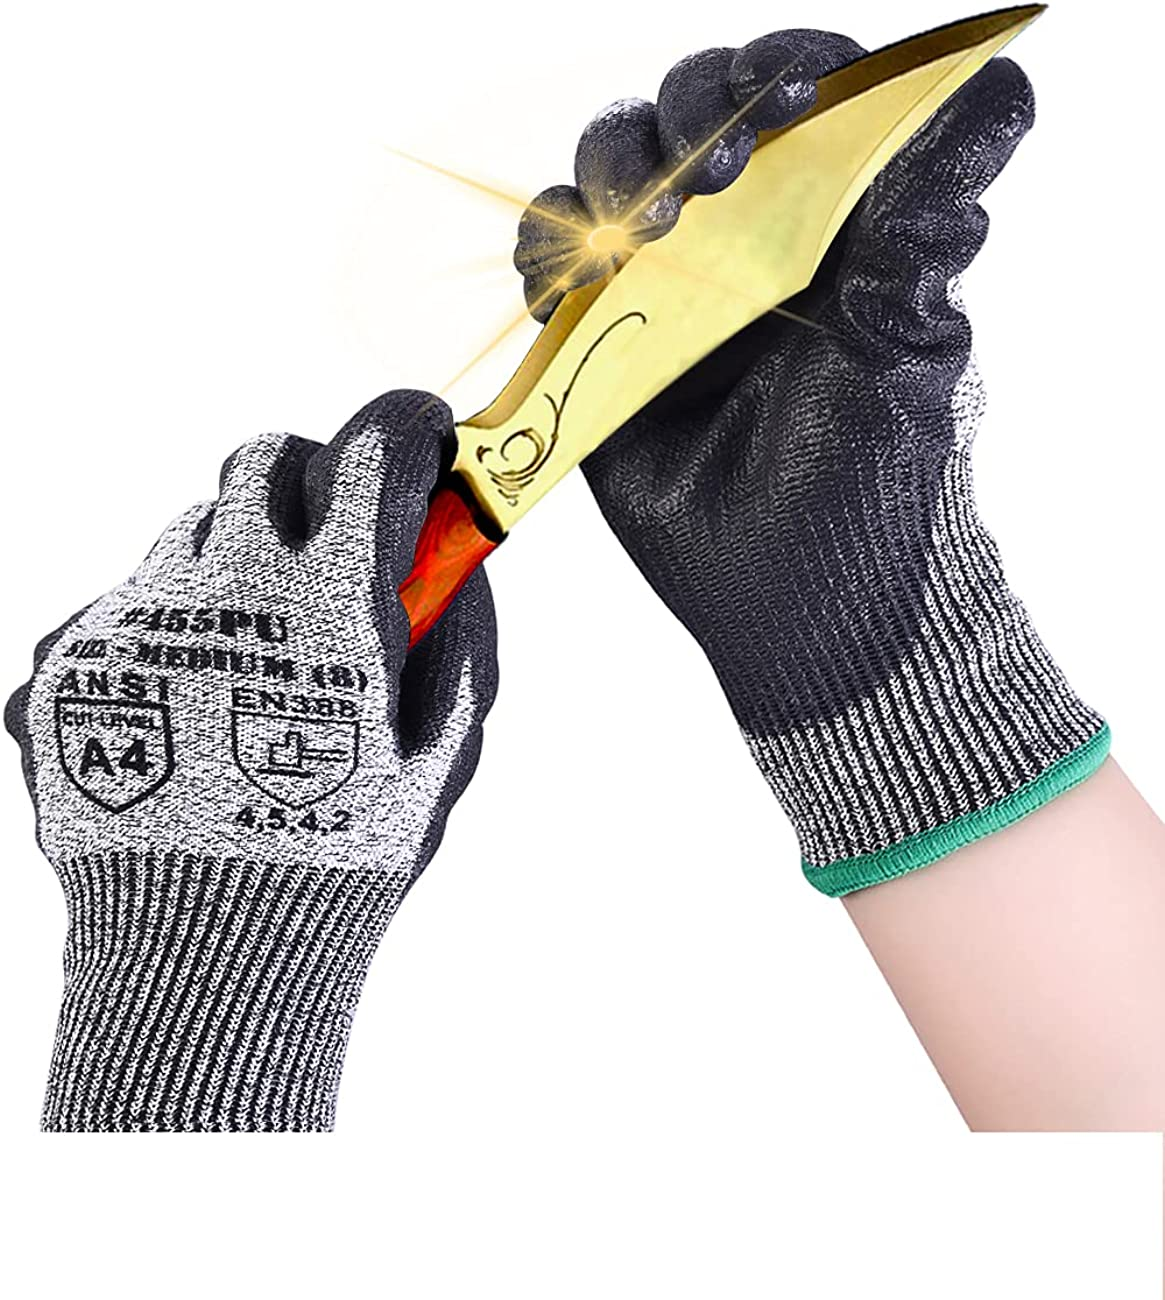 Donfri Cut Resistant Gloves 3 Pairs Level 5 Protection Safety Work Gardening Food Grade Wood Carving EN388 PU Coated Durable